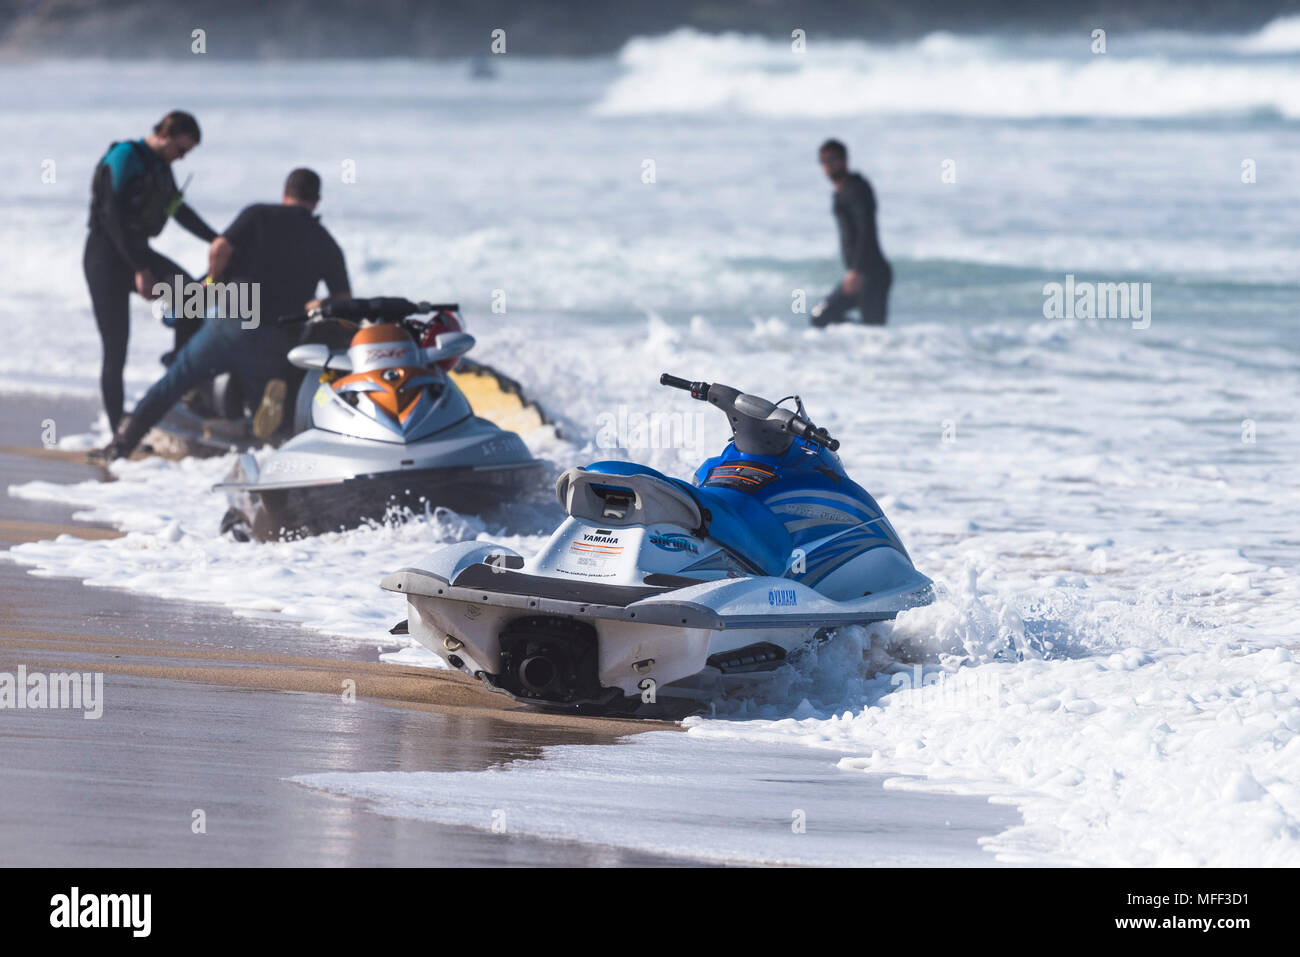 A Yamaha Jetski on the shoreline at Fistral Beach in Newquay in Cornwall. - Stock Image